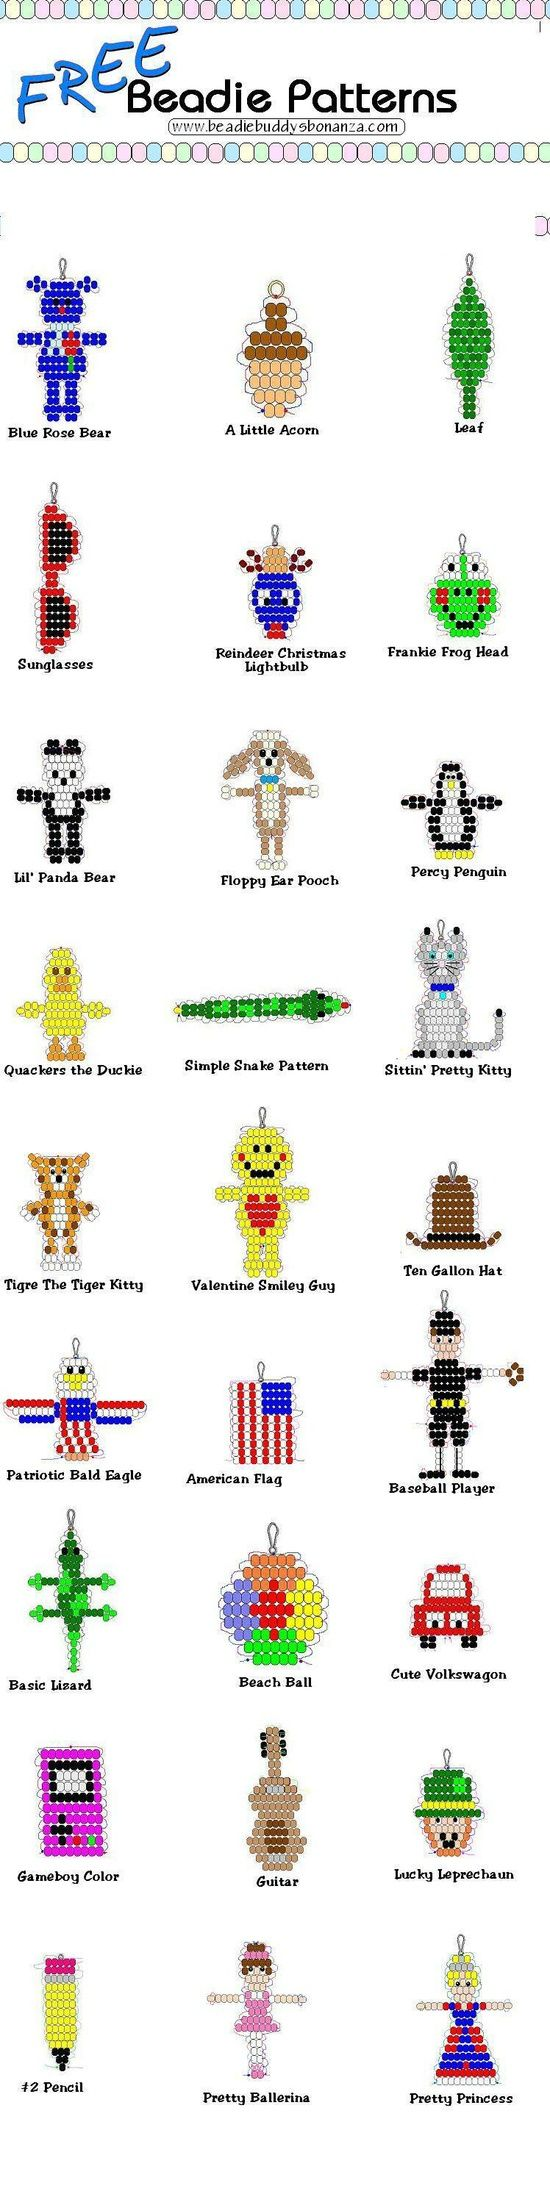 More Bead Animal Patterns - One would be surprised at how many things you can ma